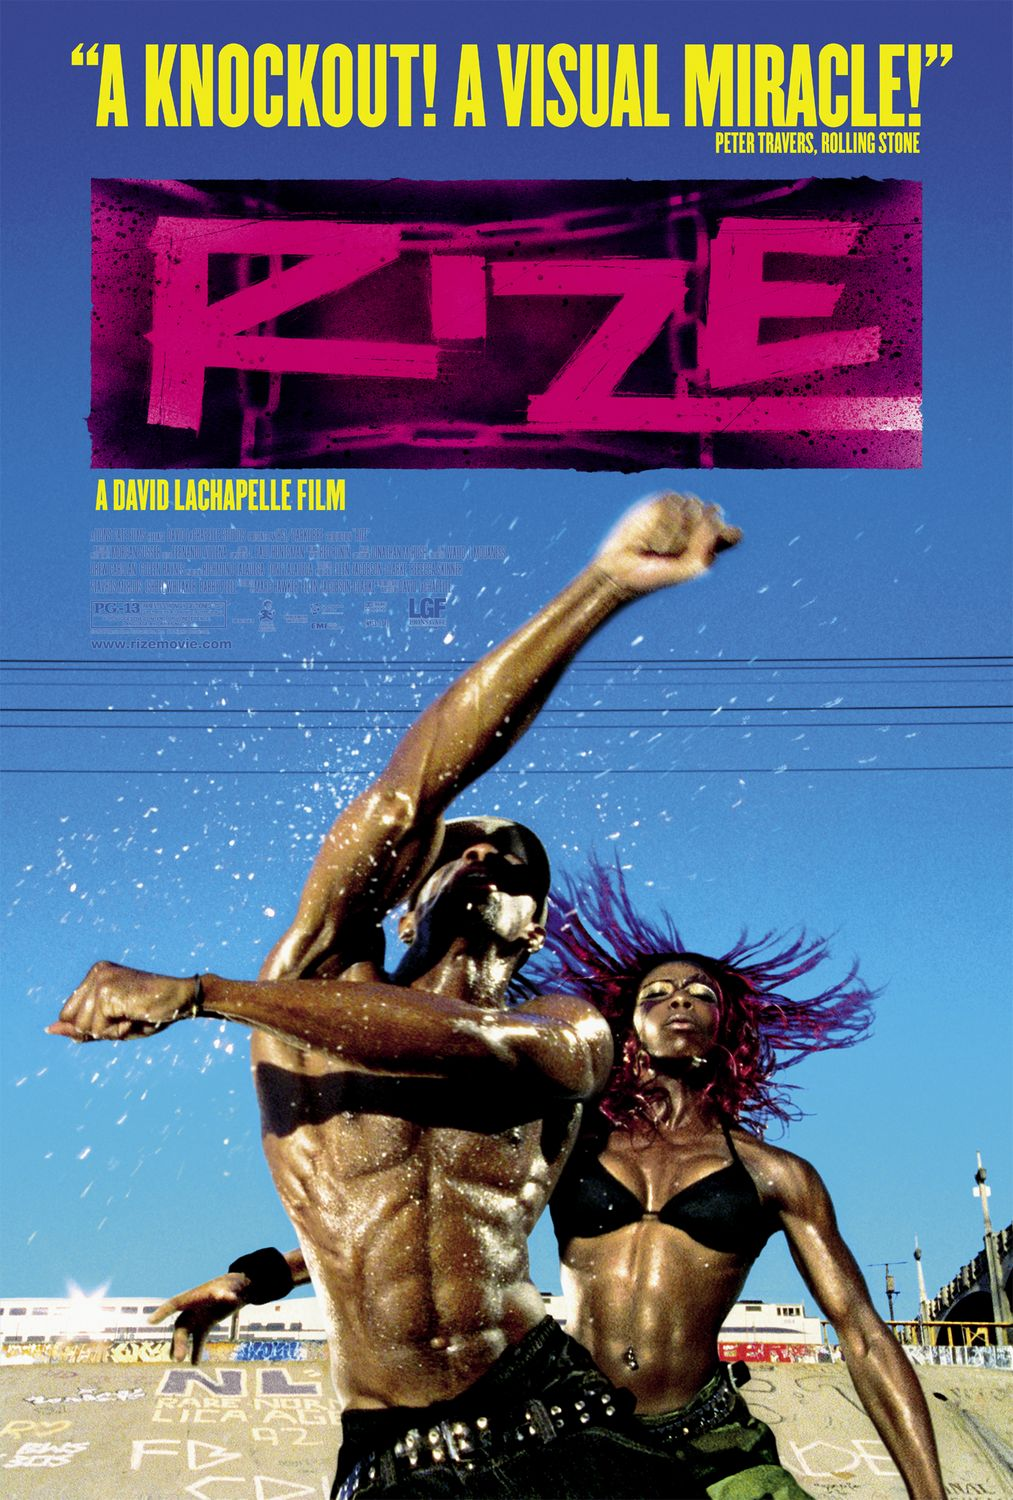 (2005) Rize chronicles a dance movement that rises out of South Central Los Angeles. -